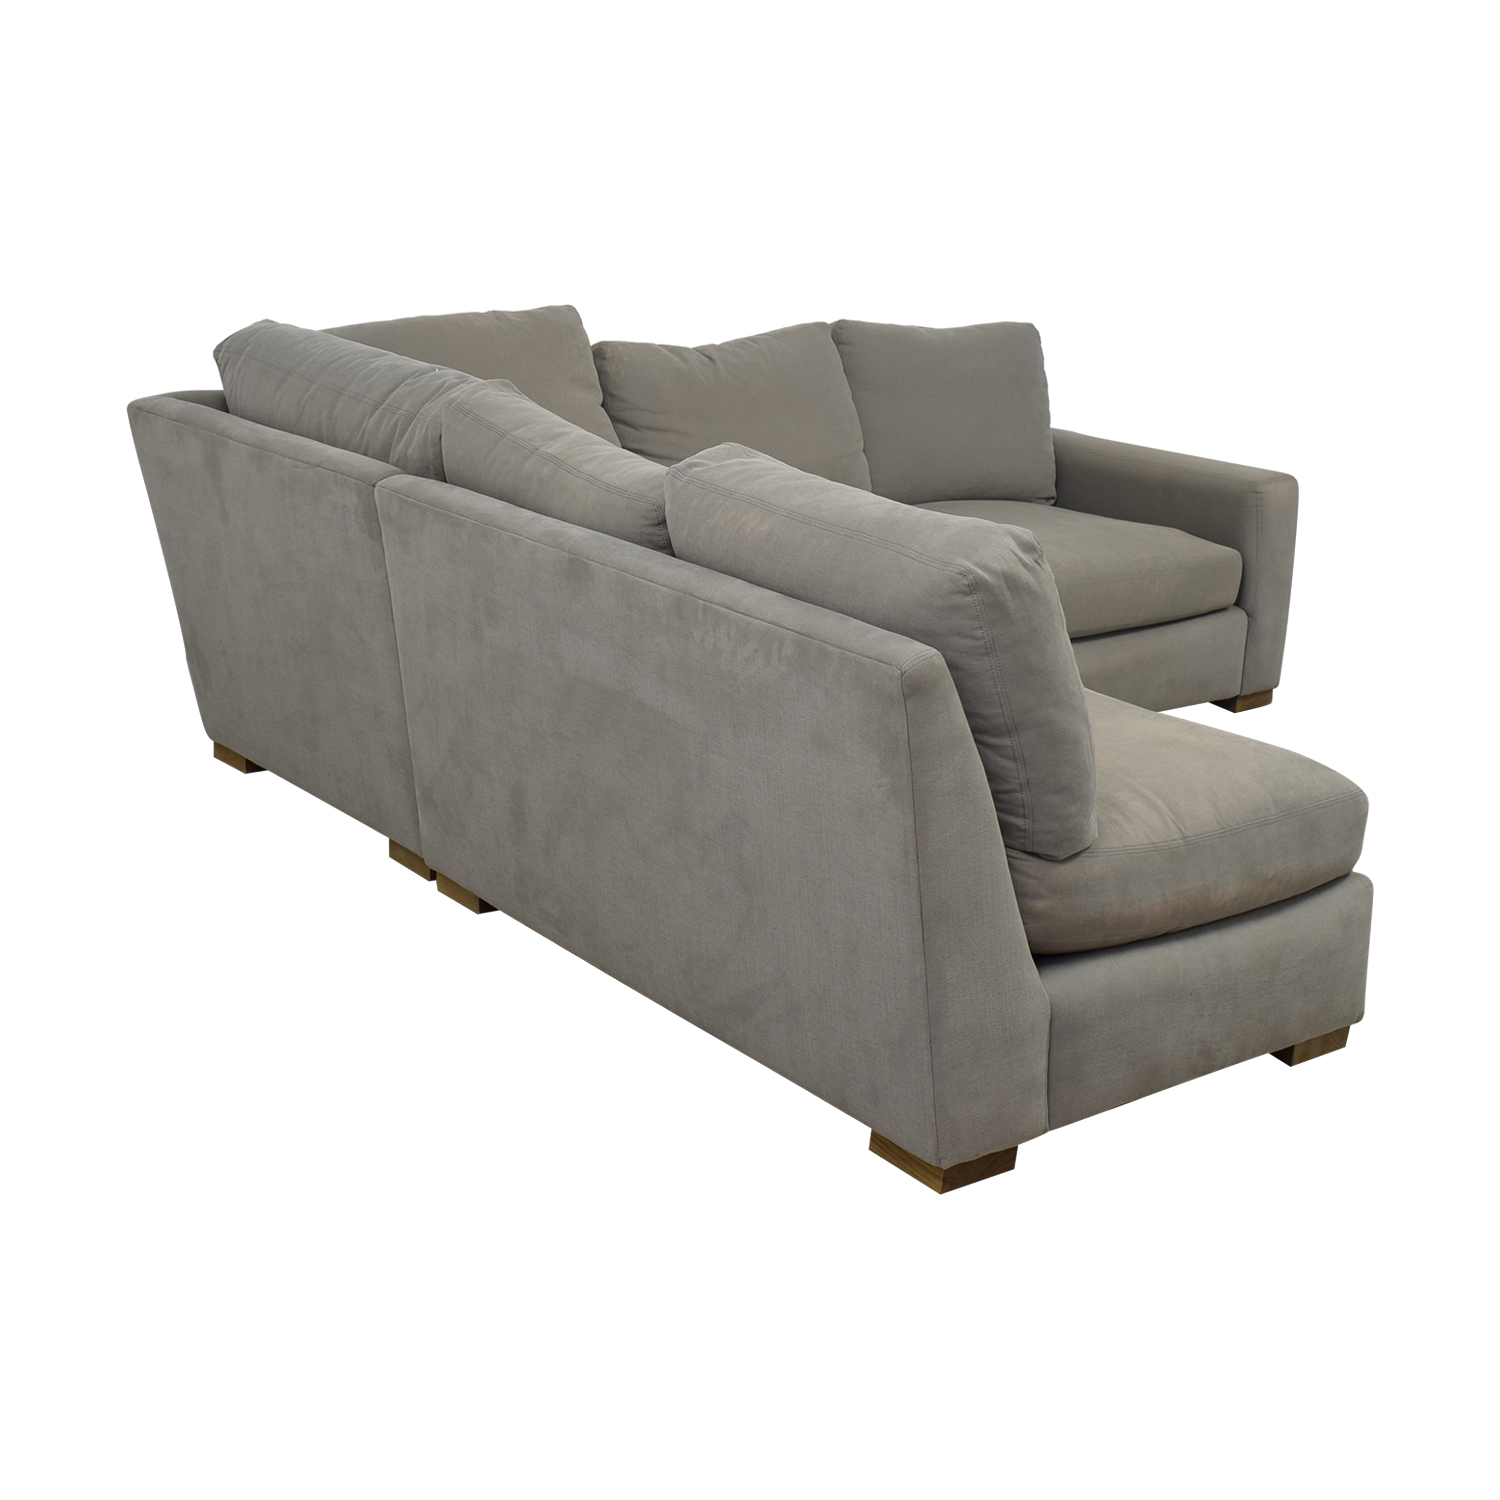 Restoration Hardware Restoration Hardware Grey L-Shaped Sectional price